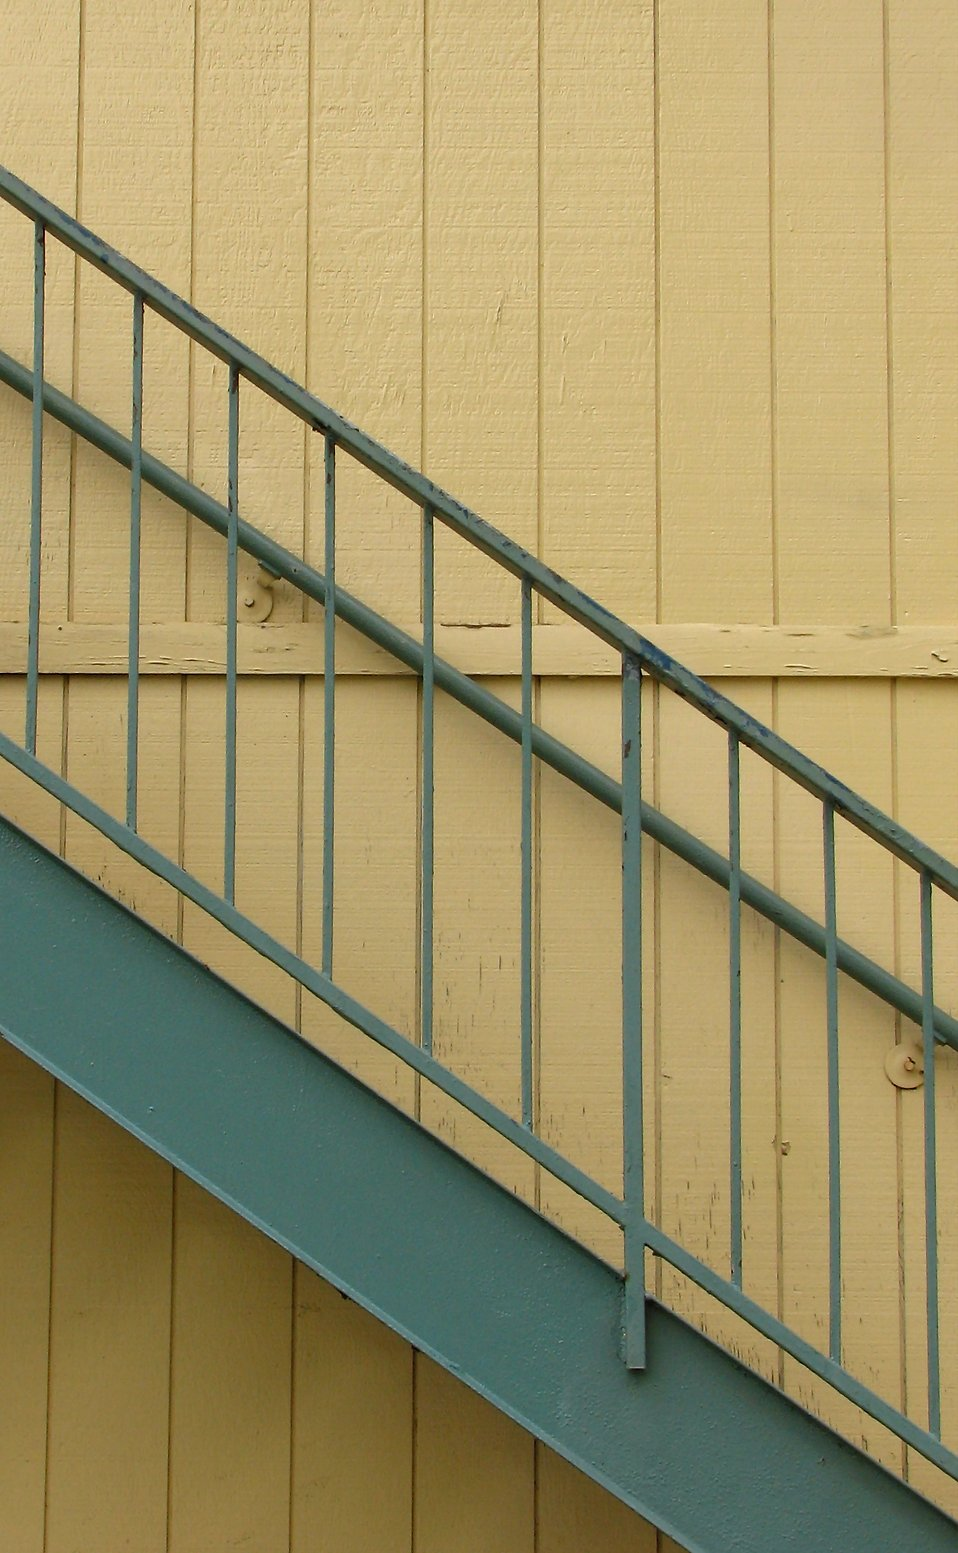 Steps on the side of a yellow building : Free Stock Photo